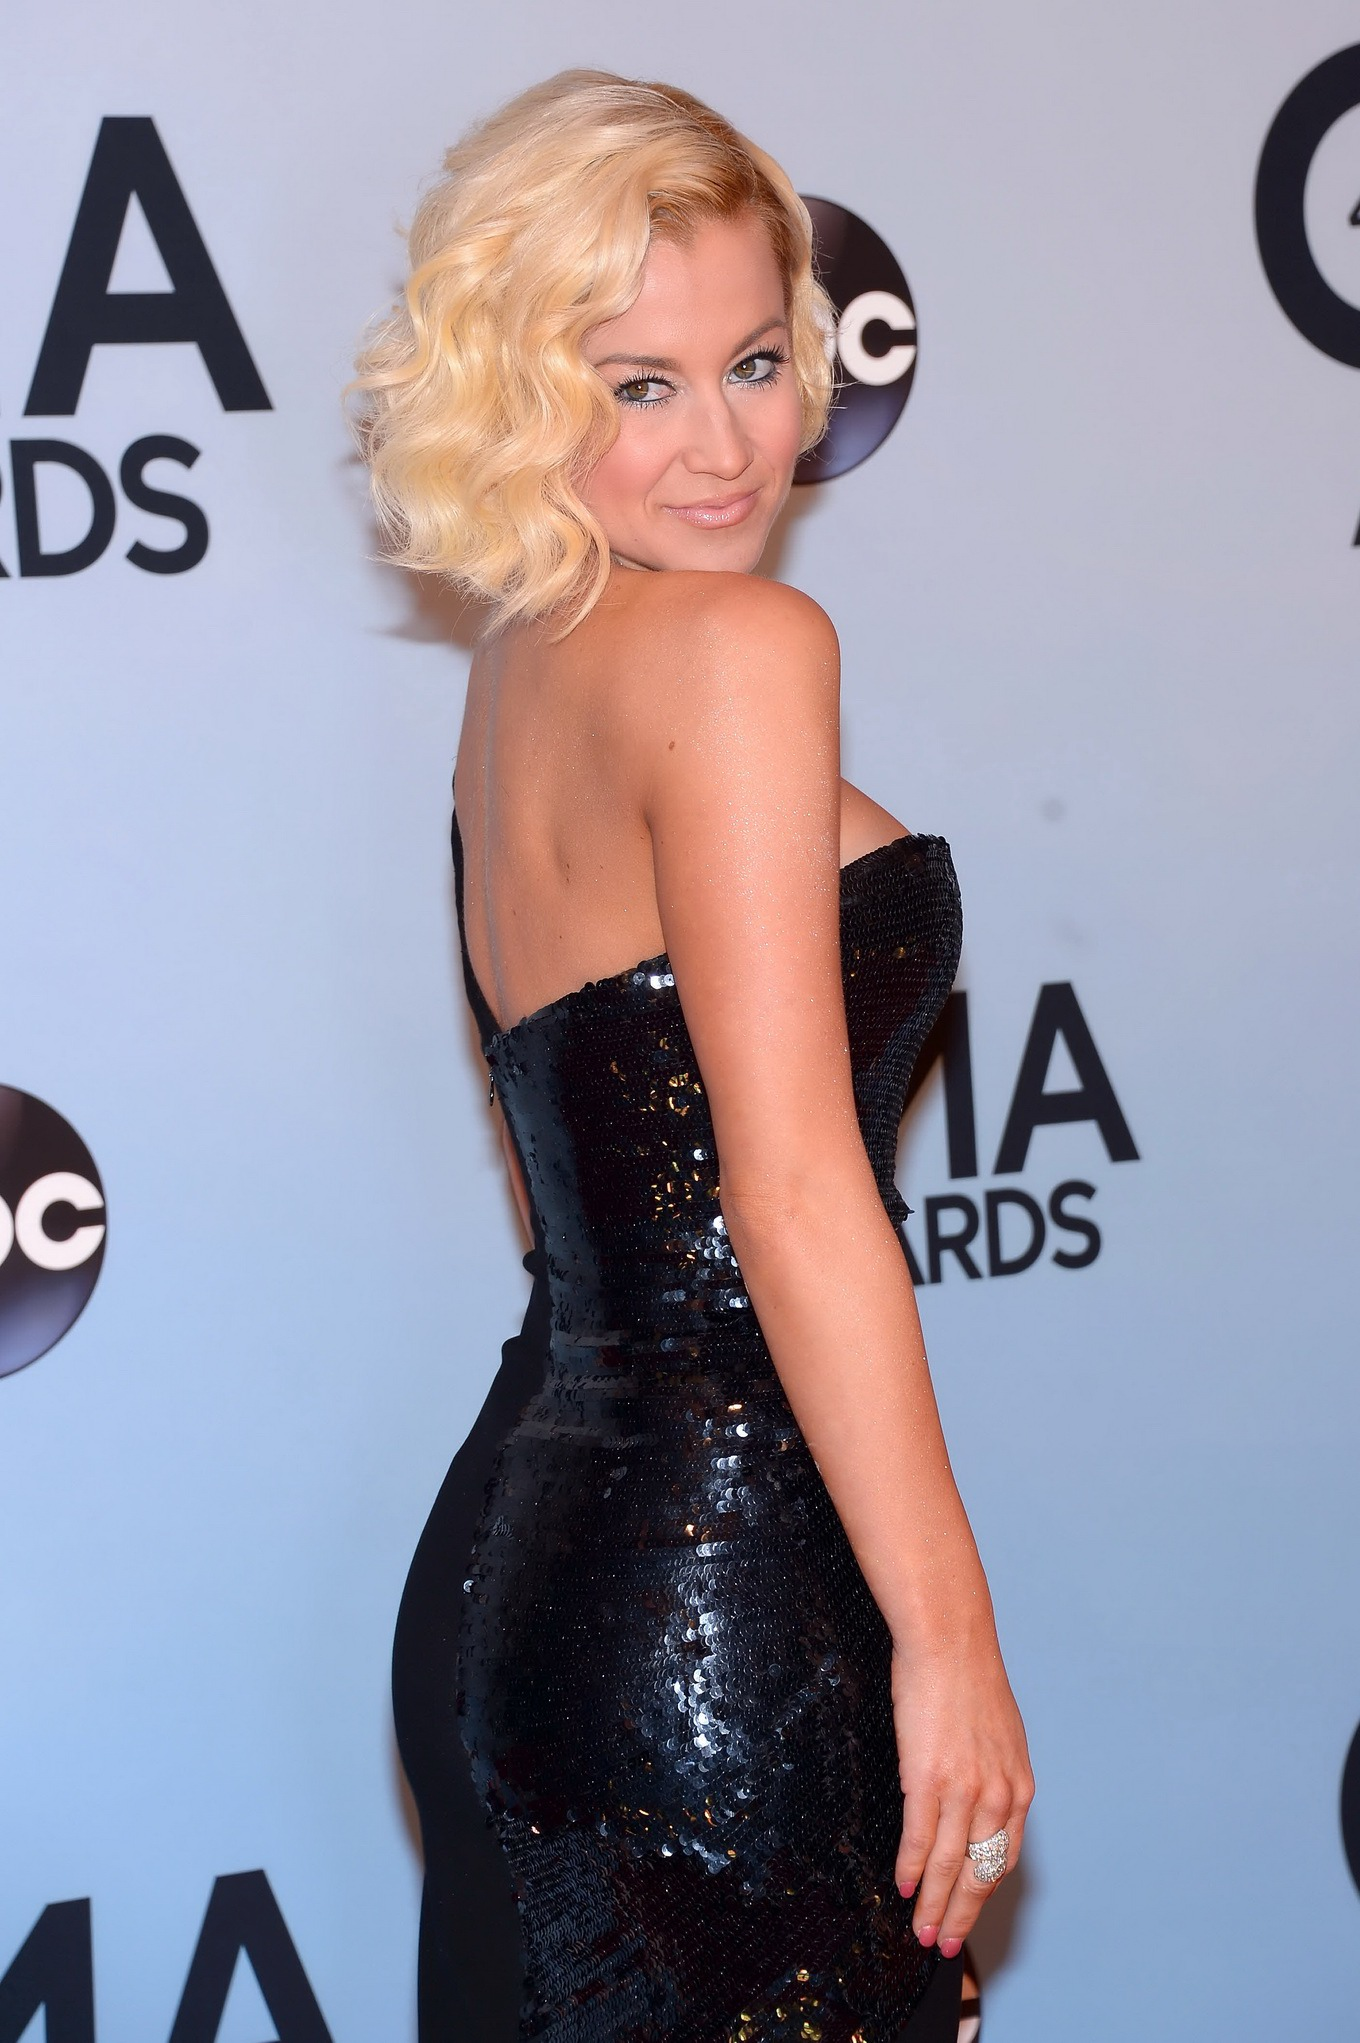 Kellie pickler dress